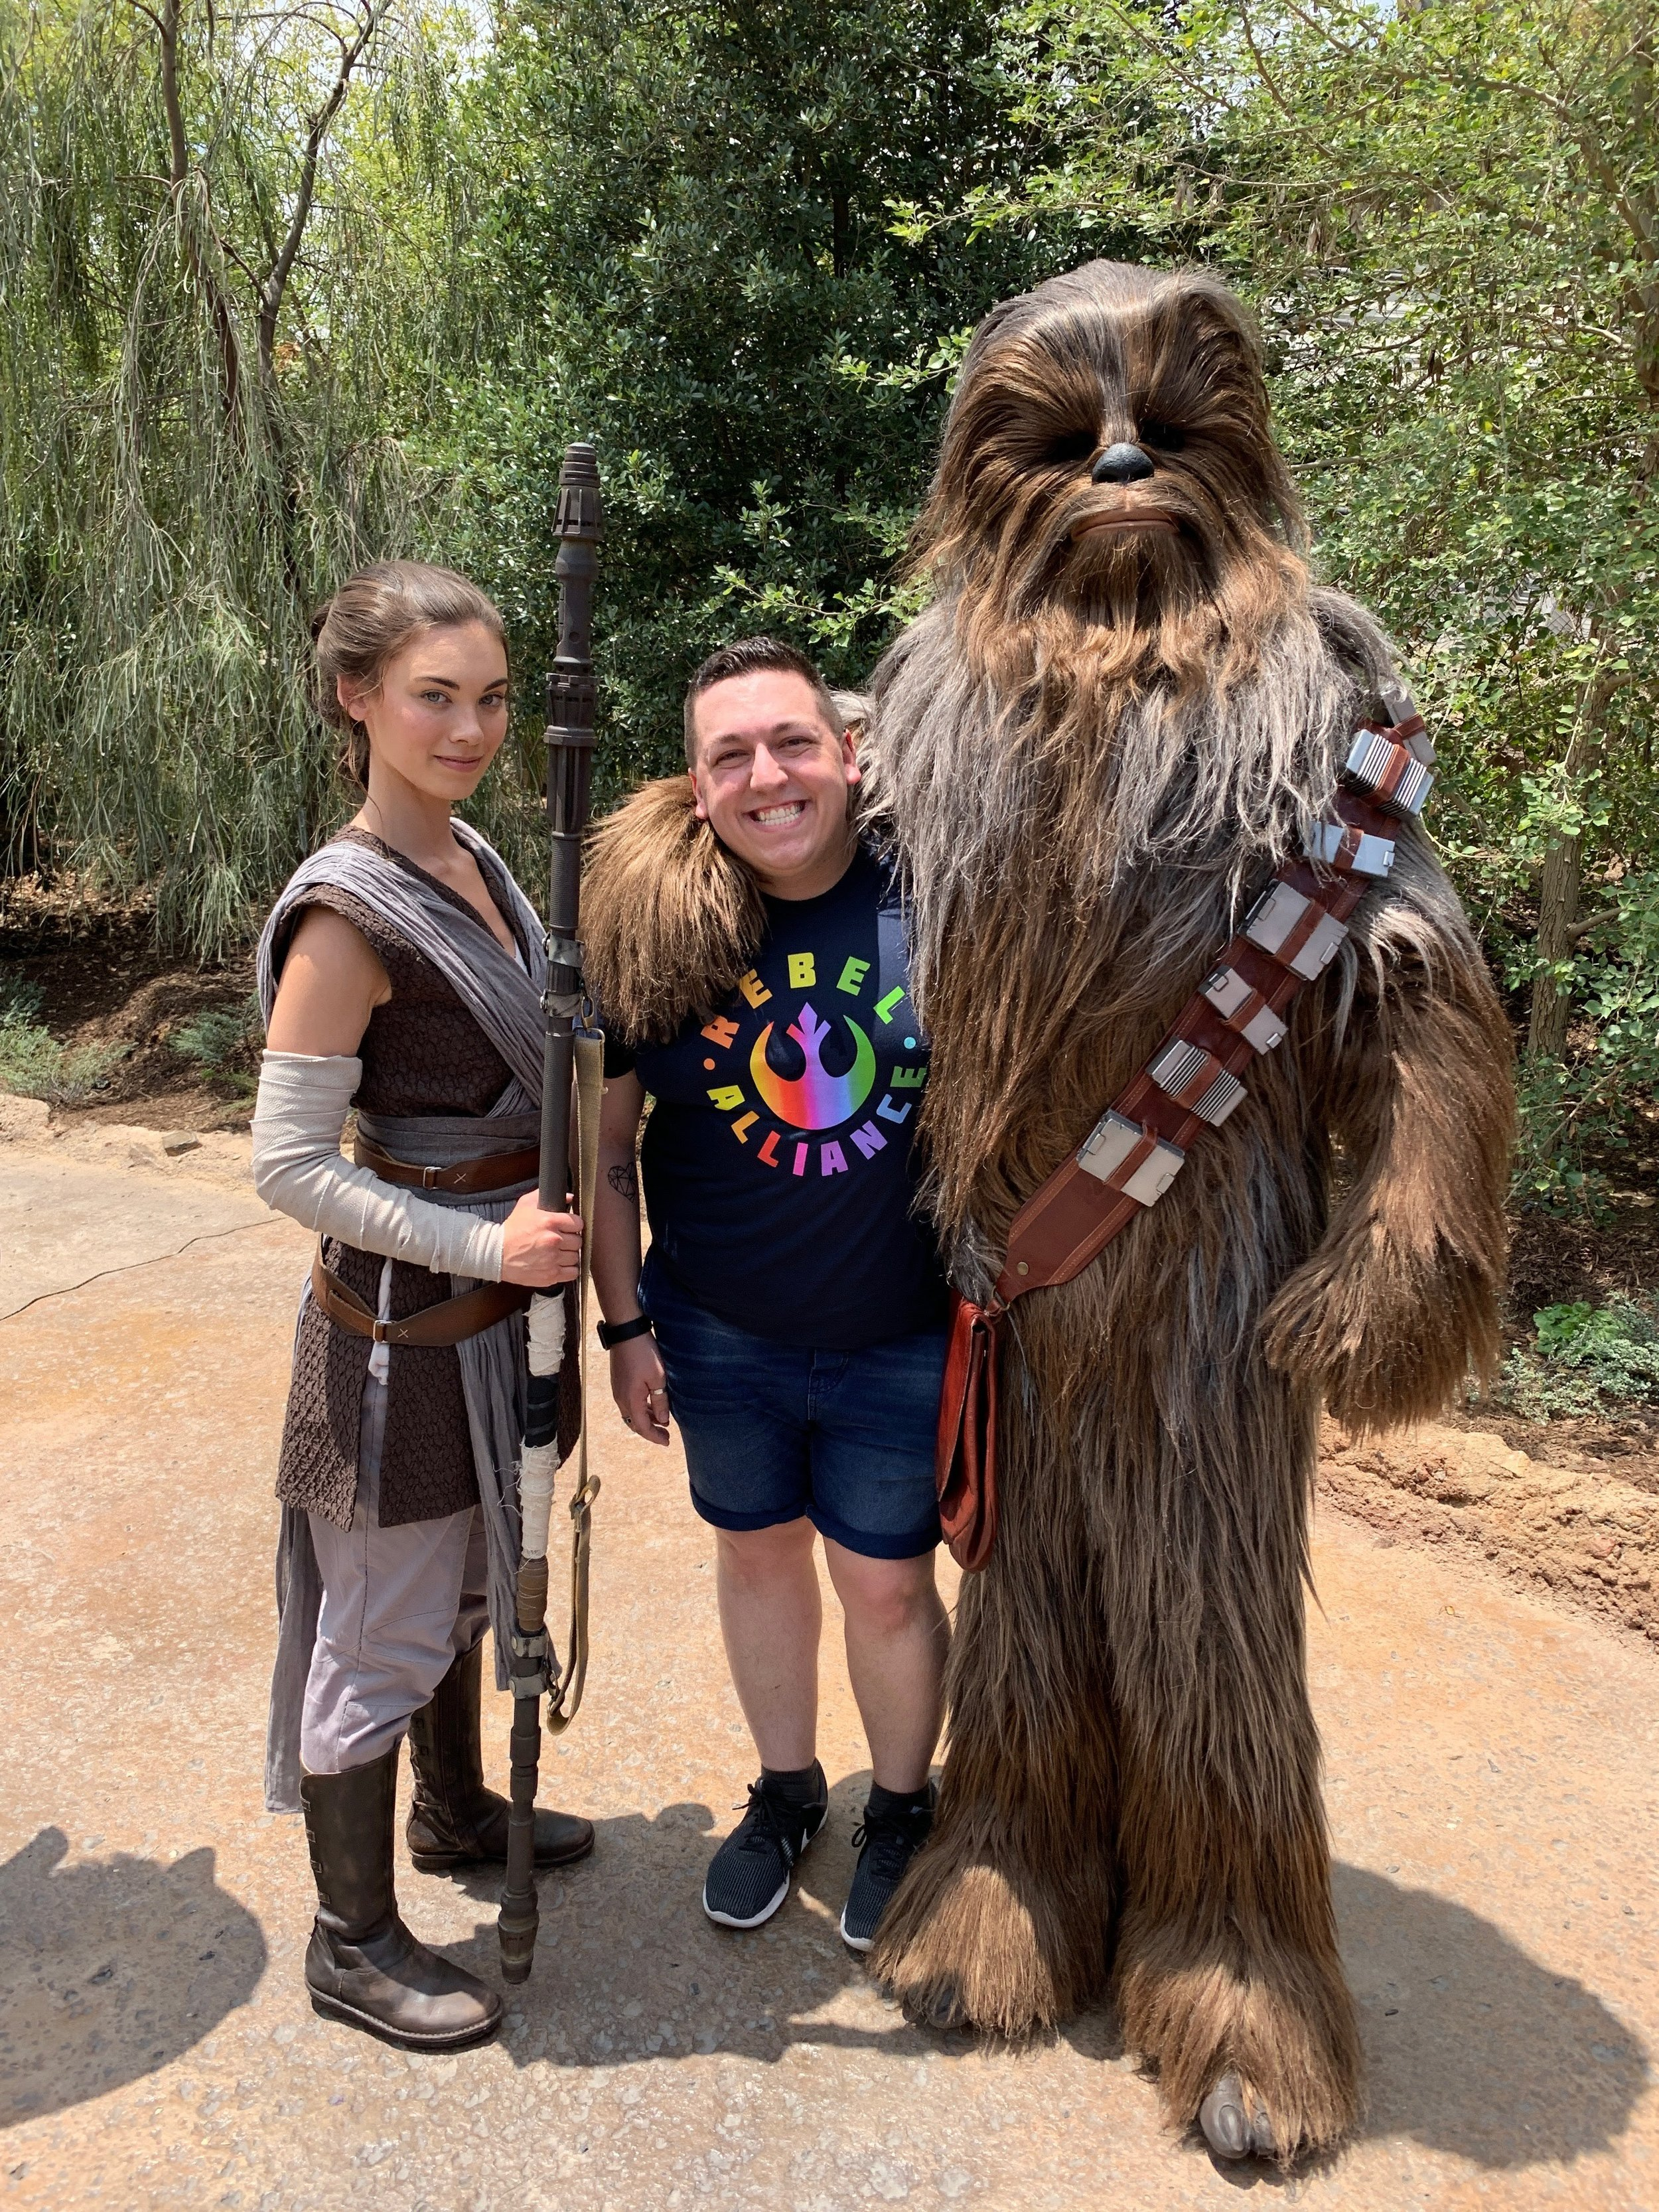 All   I wanted was a photo with Chewbacca so needless to say, I was thrilled after this